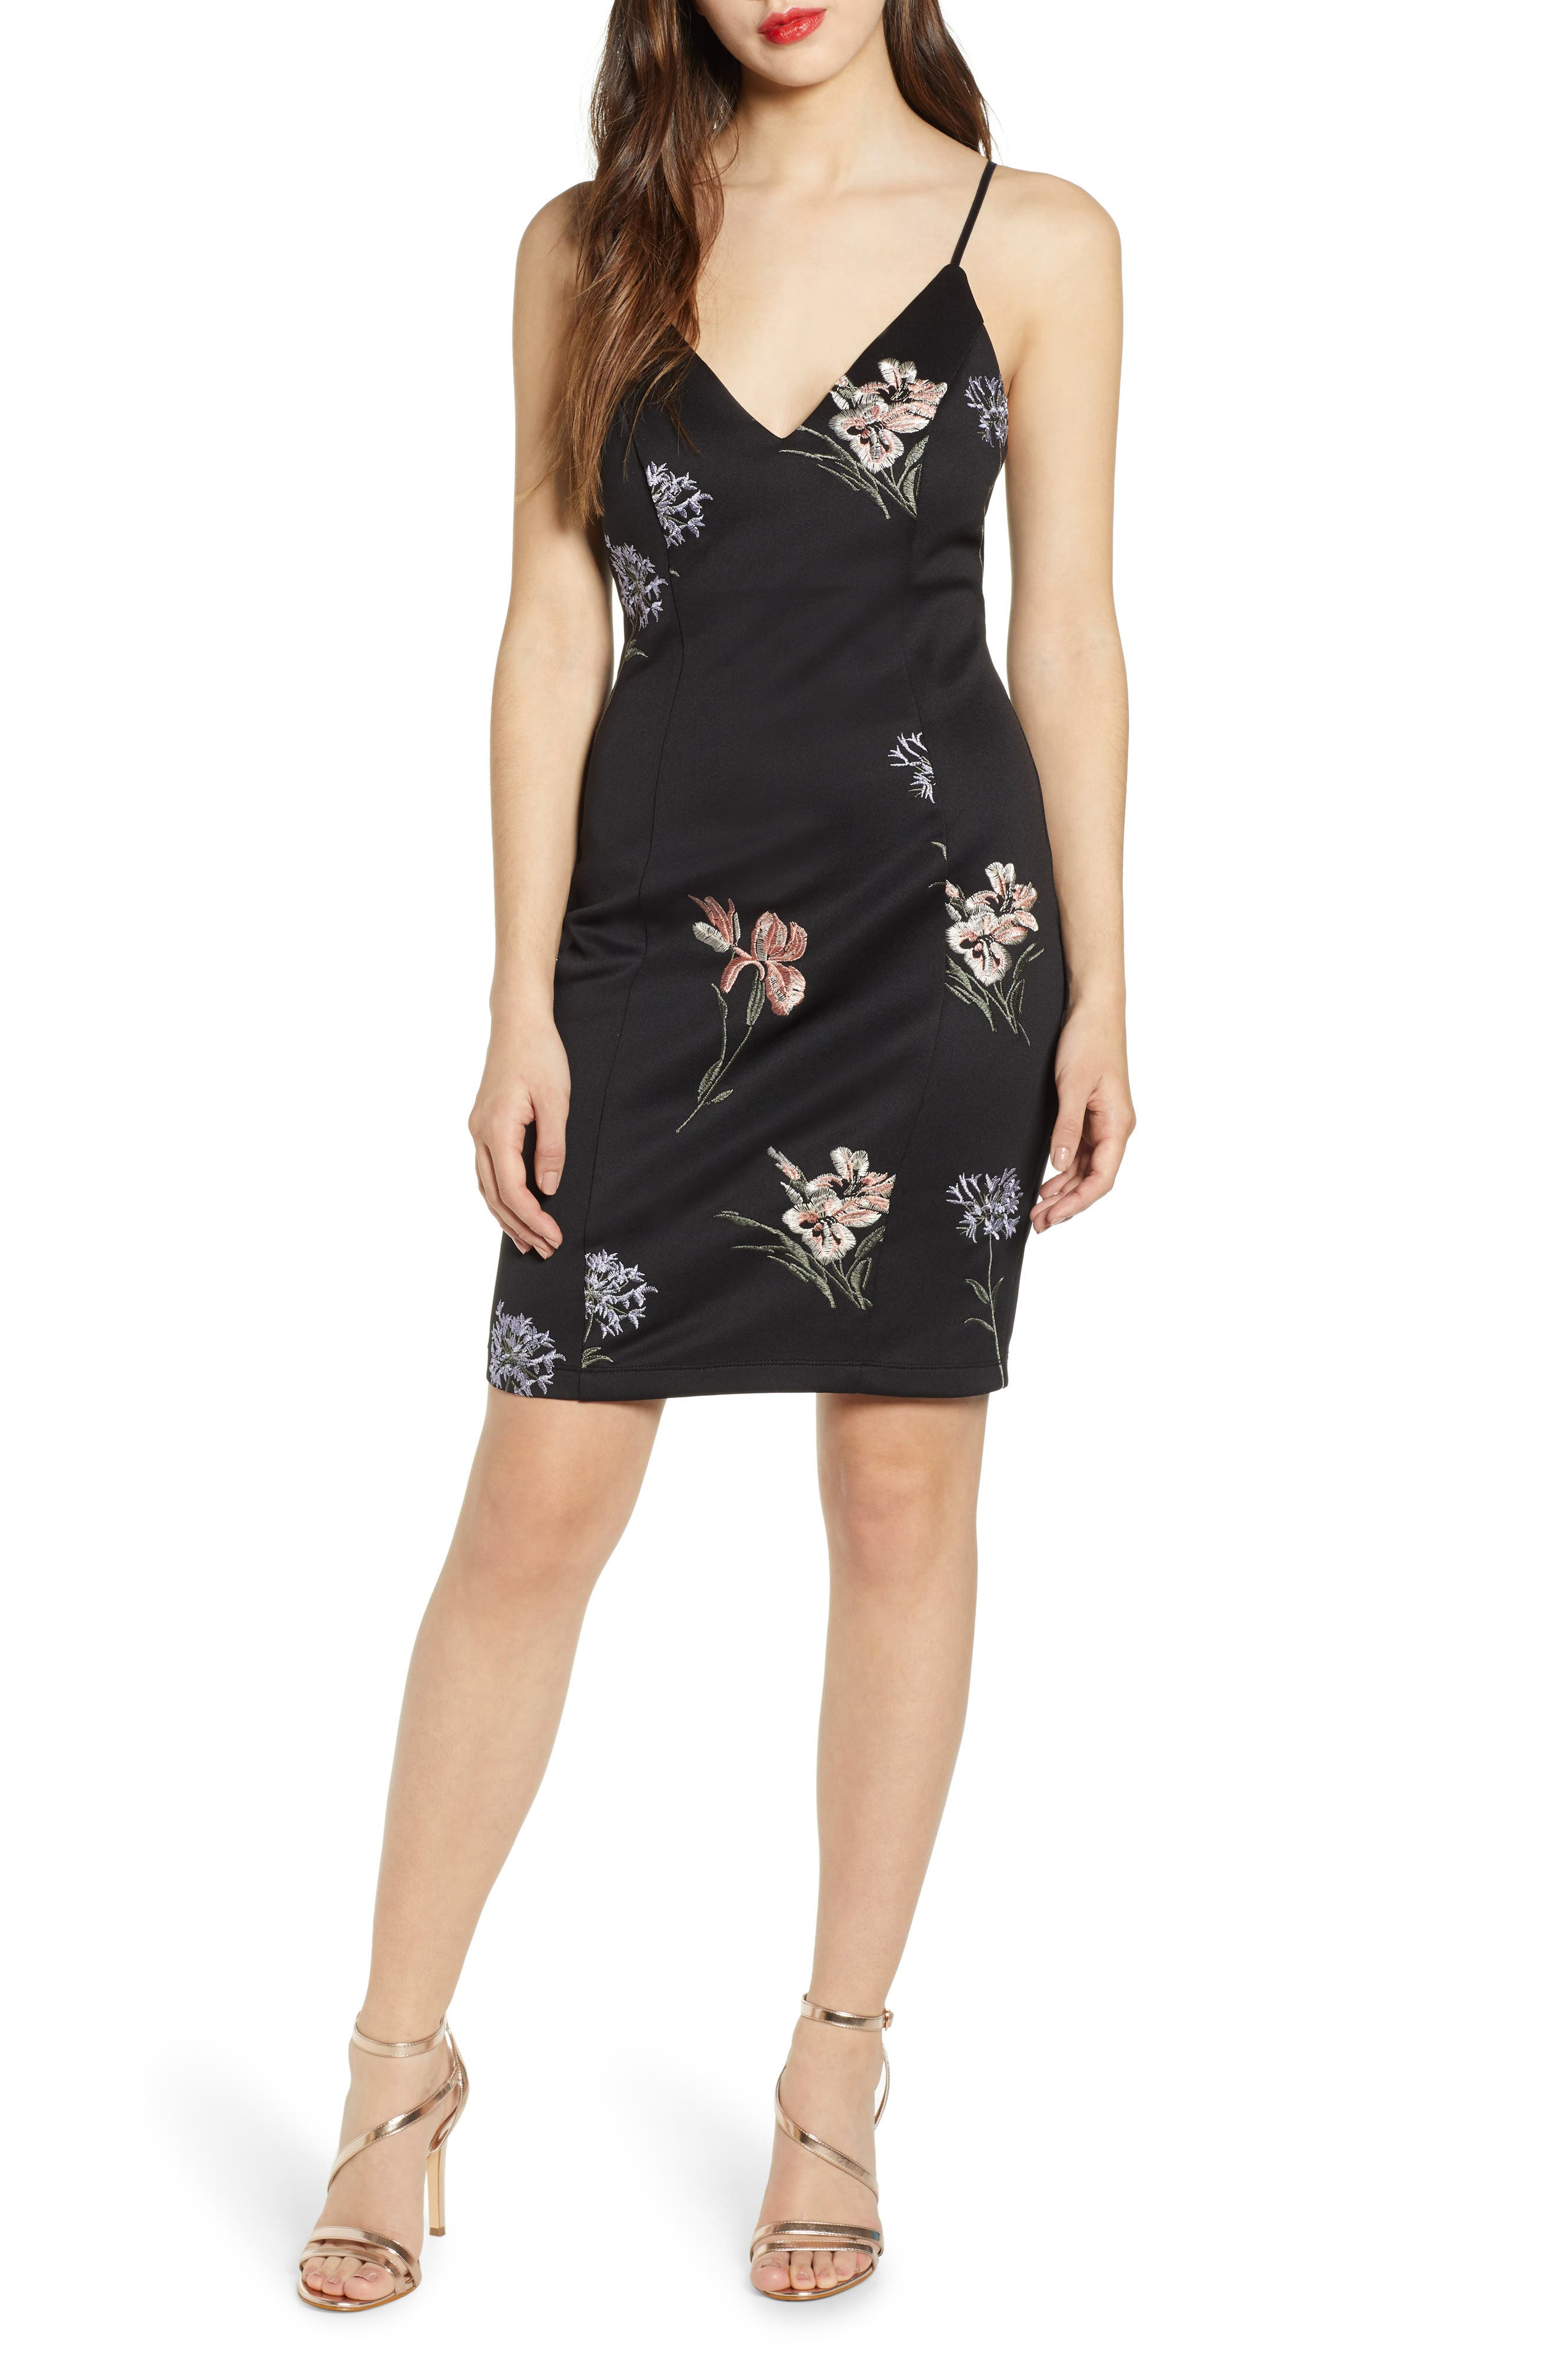 Love, Nickie Lew Embroidered Flowers Body-Con Slipdress, Black